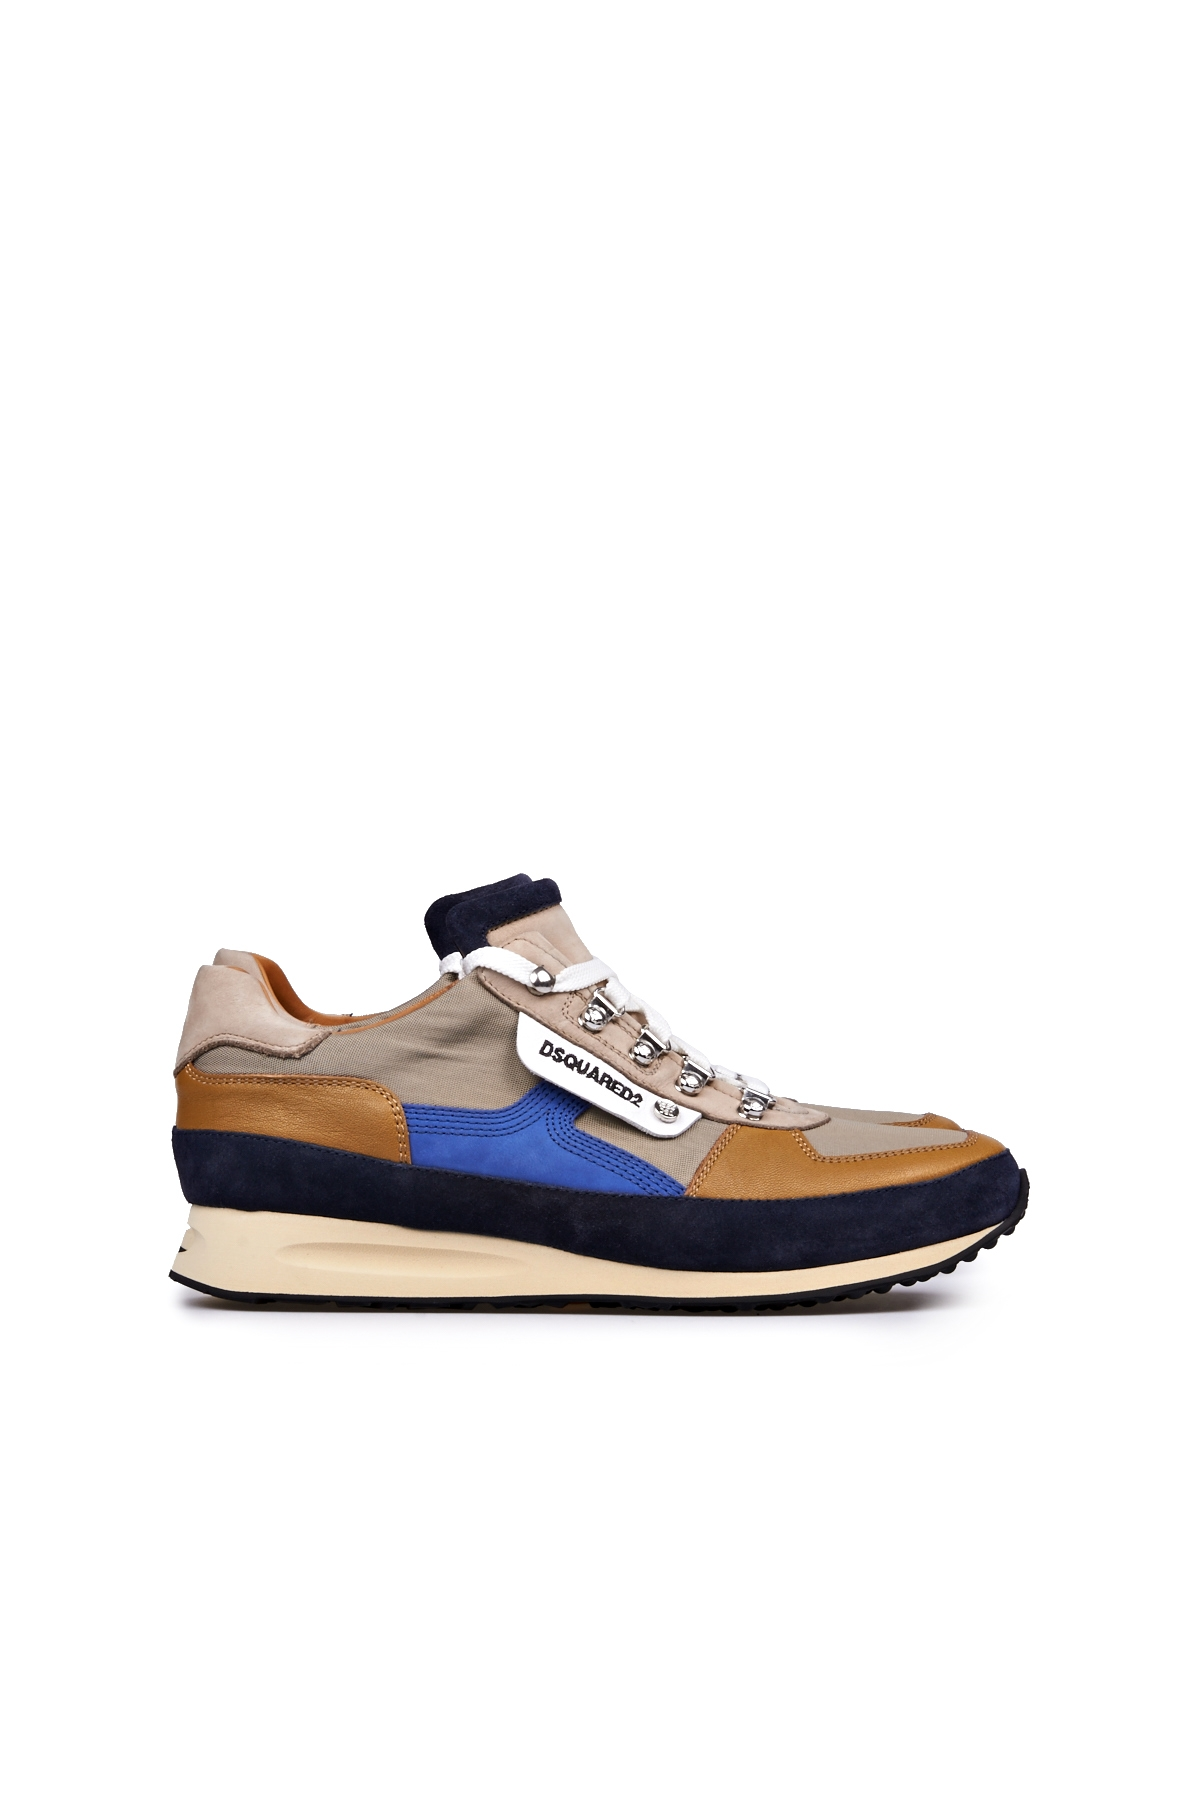 free shipping b3b13 9d2e8 Dsquared2 SS14 Leather sneakers available at www.fatimamendes.com